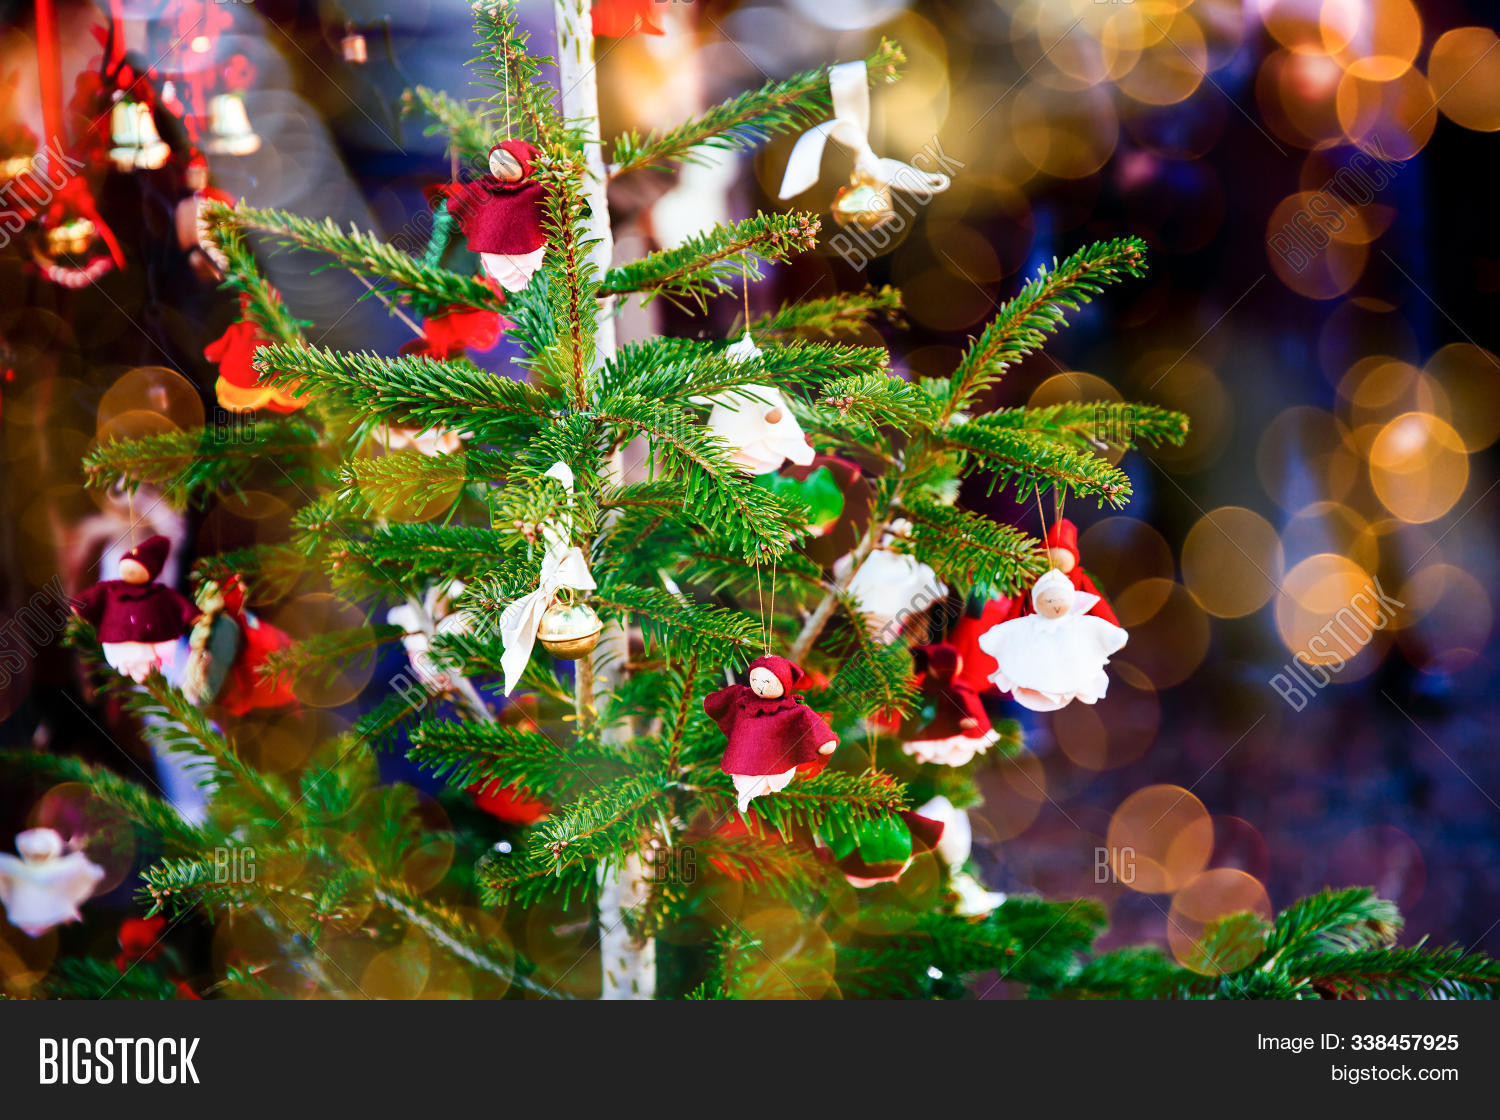 Colorful Christmas Image & Free Trial